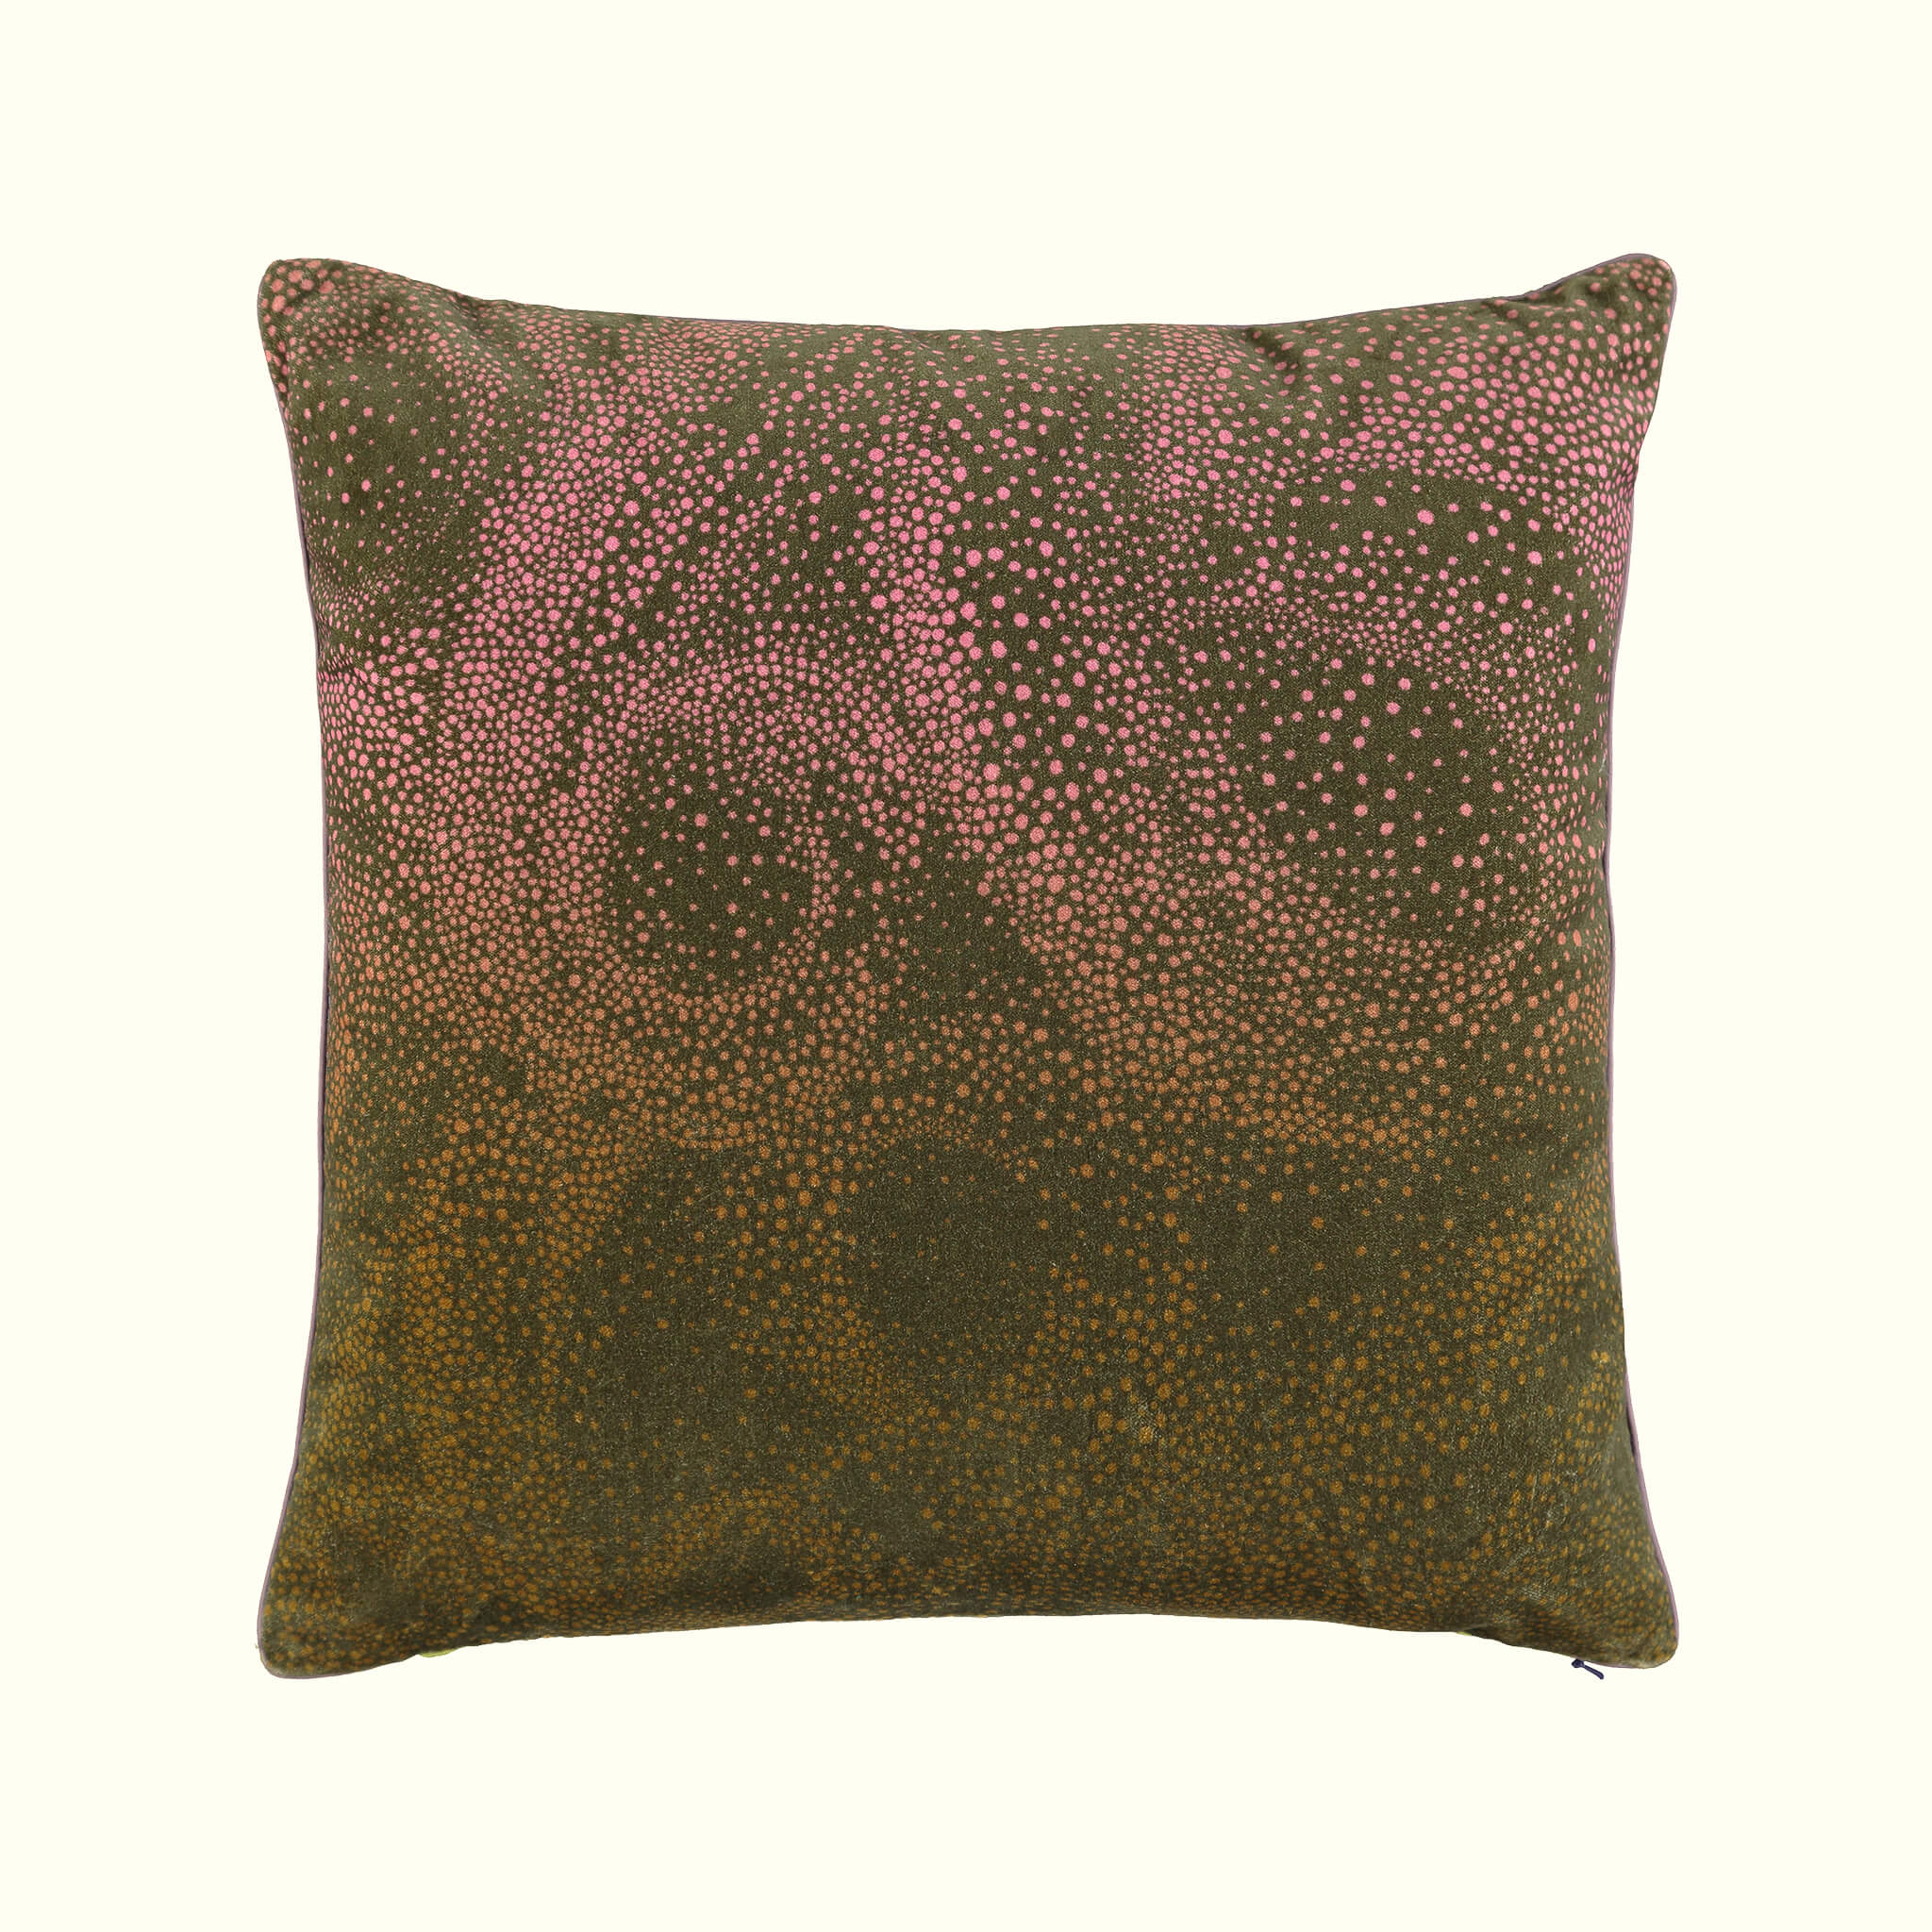 A luxury British cotton velvet cushion by GVE in olive and pink Aurora print design.